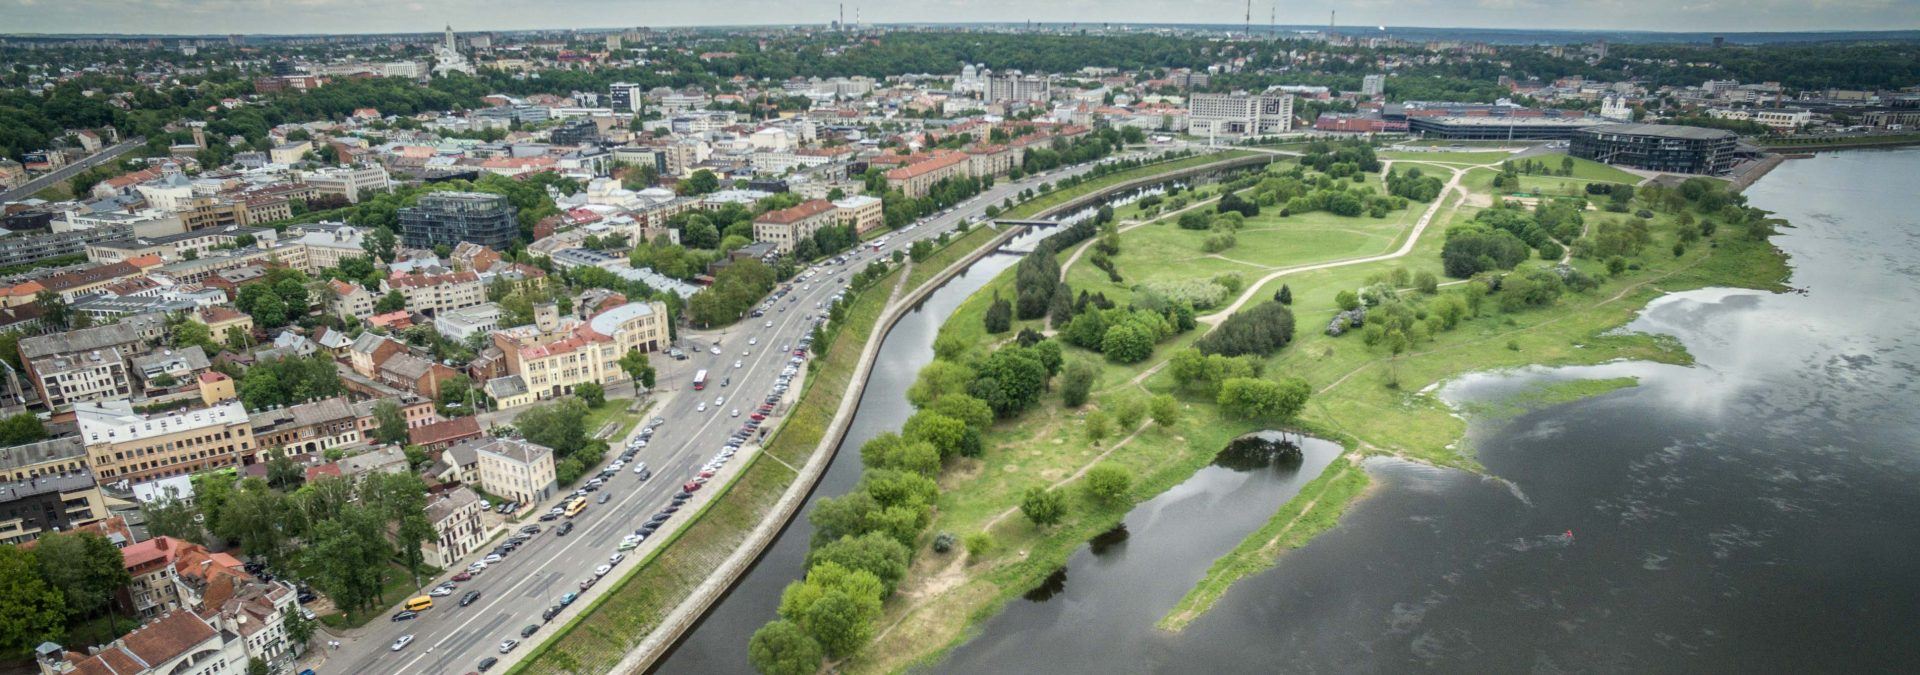 Kaunas Cities Of Design Network - Unescos 15 most beautifully designed cities in the world